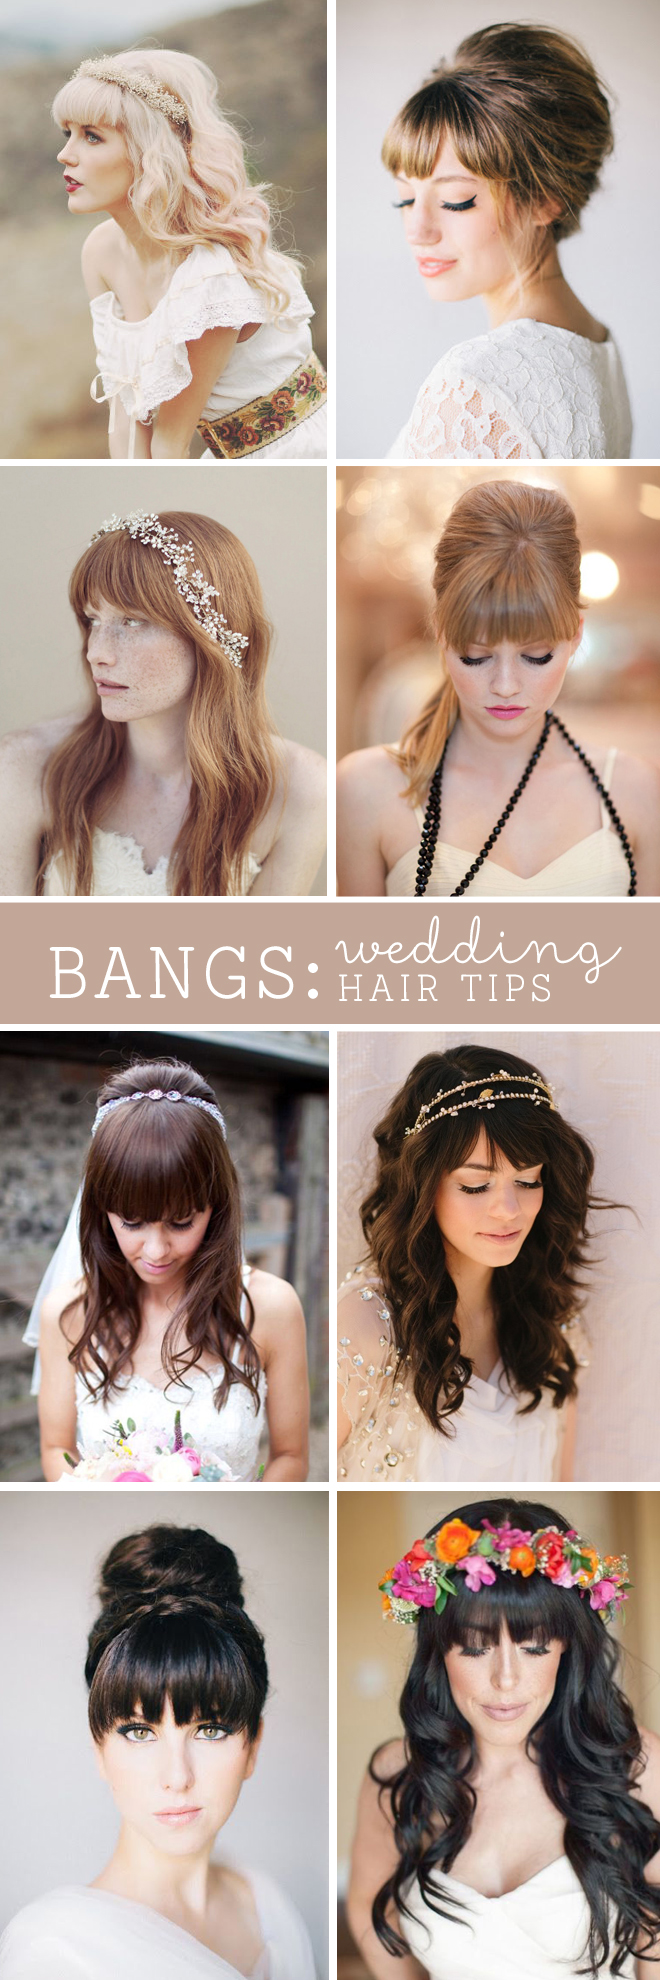 check out these professional hair dresser tips on wedding hair styles with full bangs